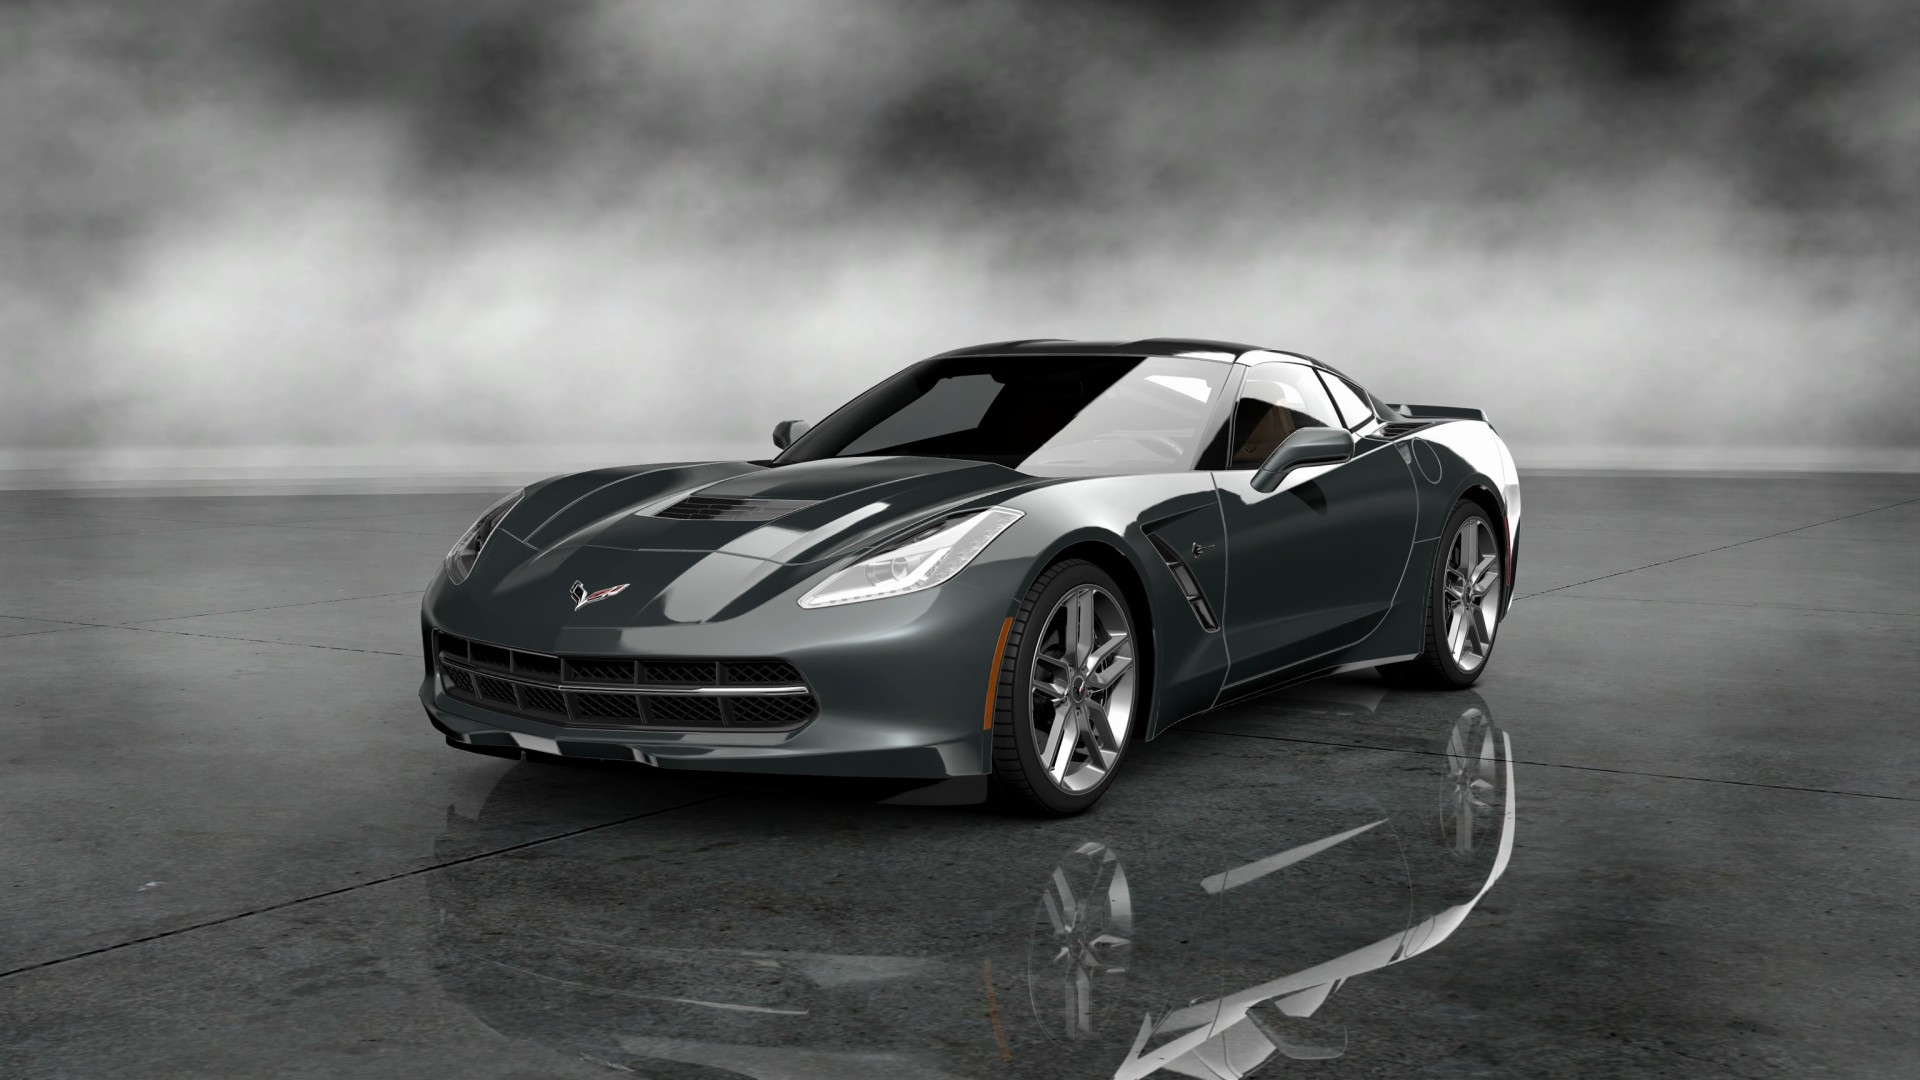 Chevrolet Corvette Stingray #6